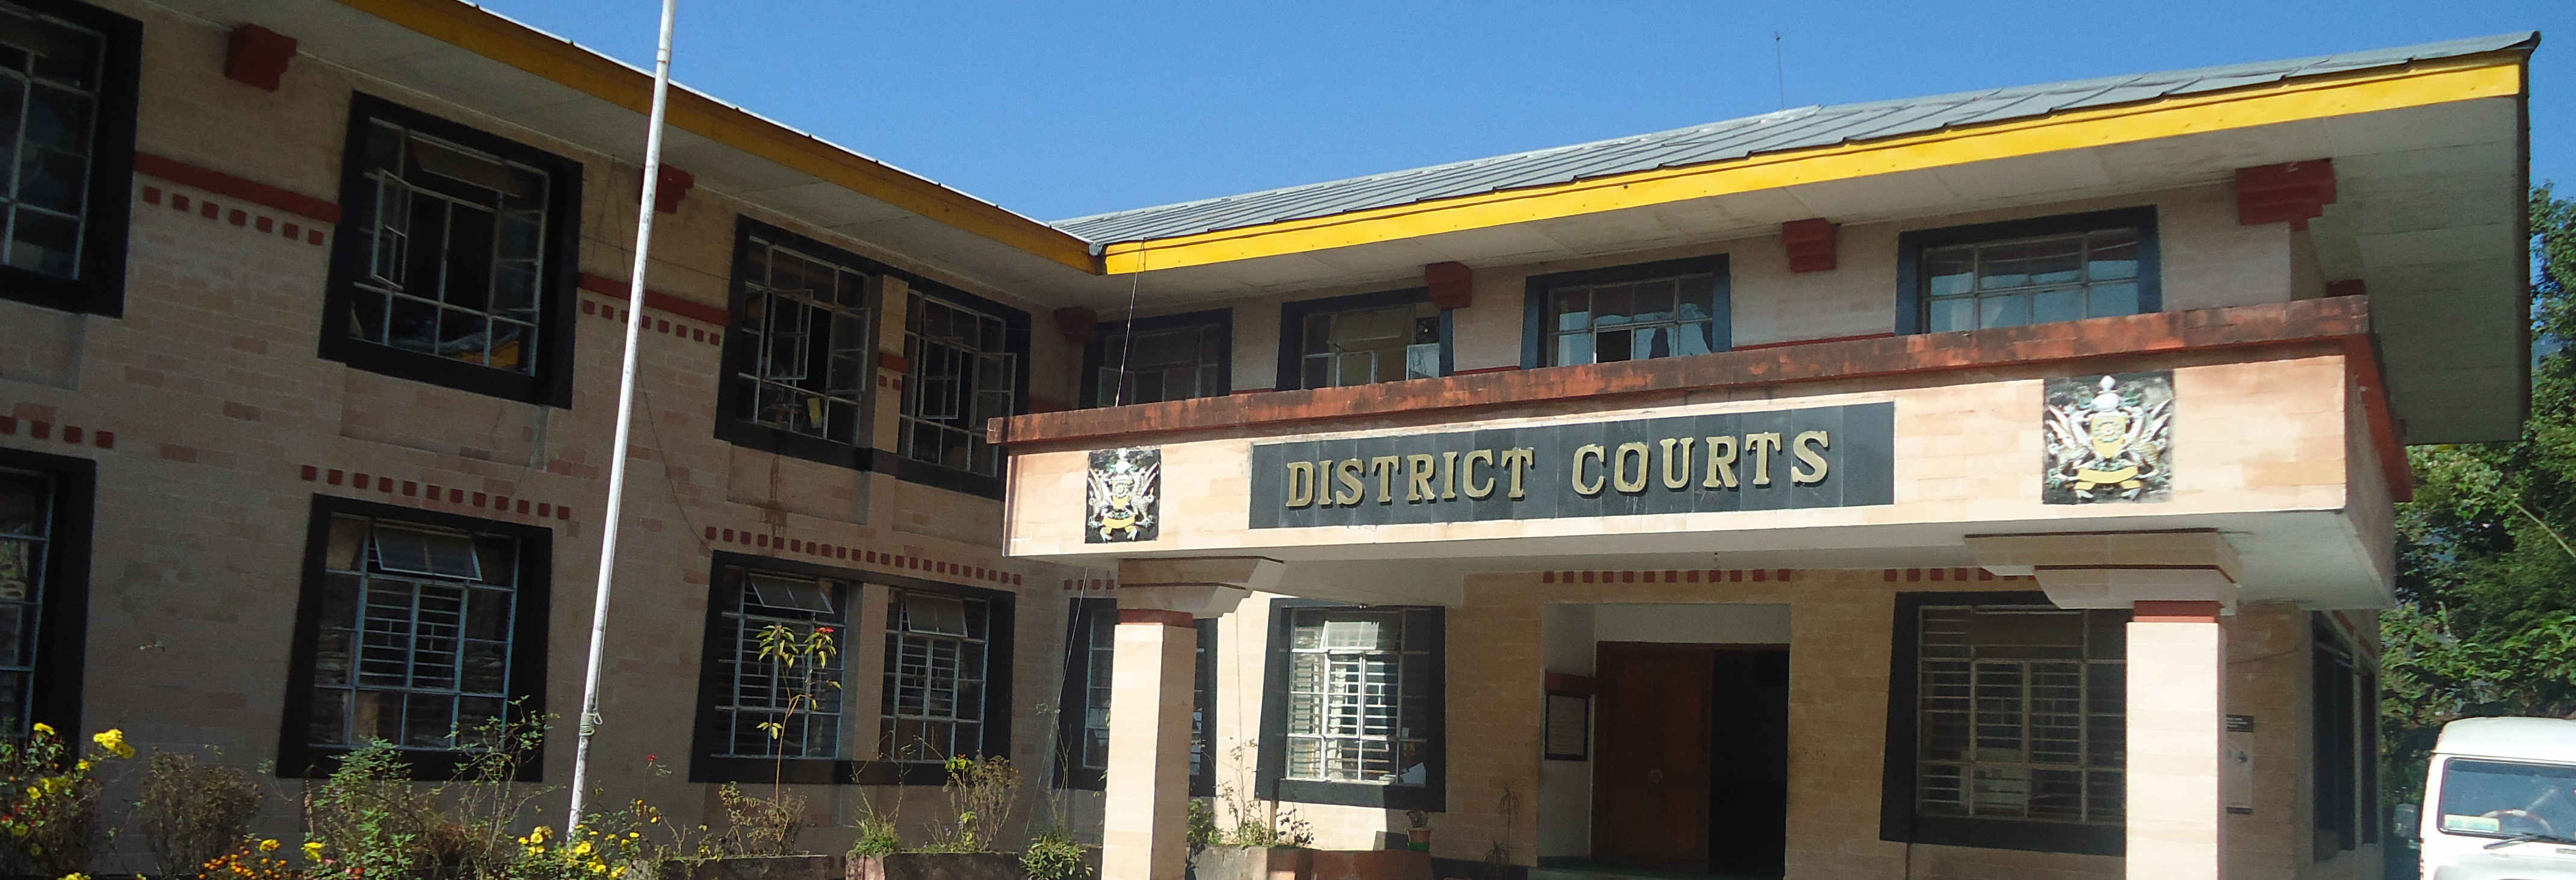 East Sikkim/District Court in India   Official Website of